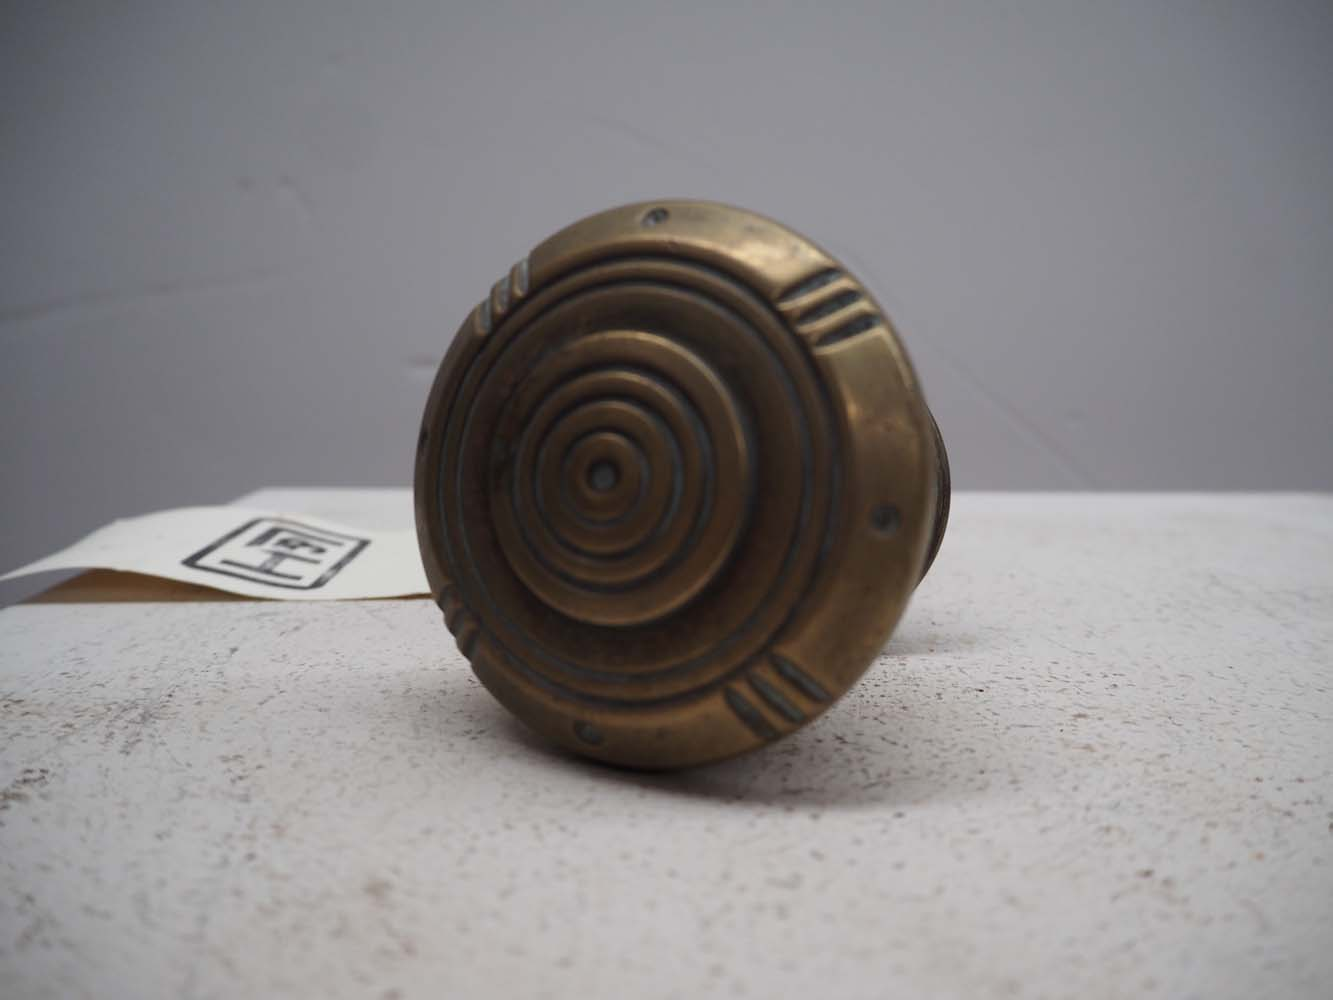 Late 19th century brass front door knob